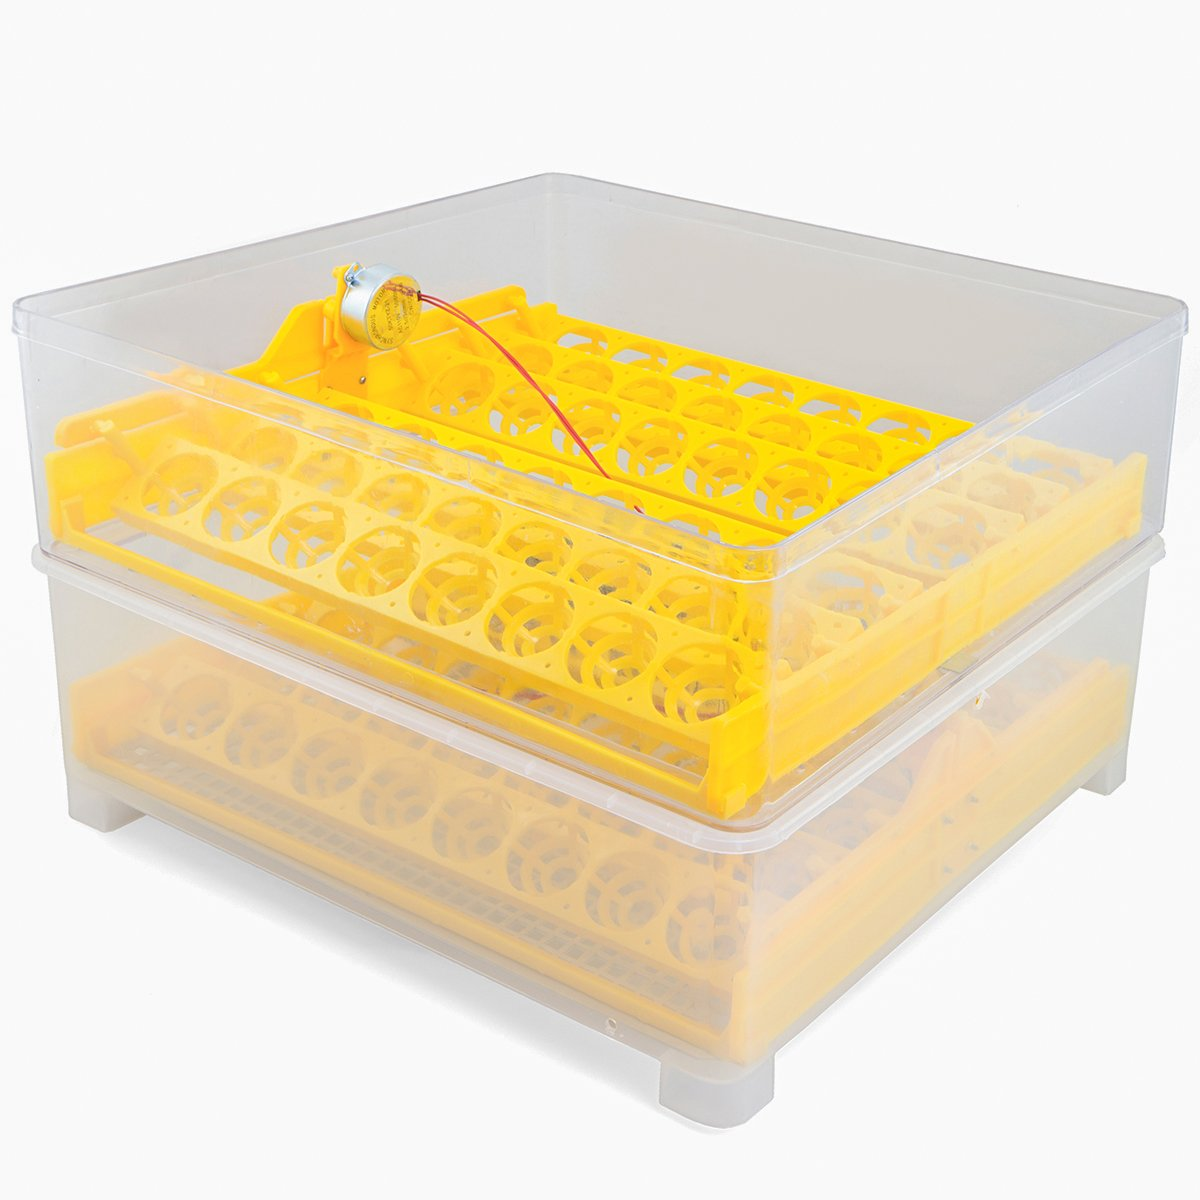 XtremepowerUS Egg Incubator 96 Eggs 2 Layer Digital Control Panel Poultry Hatcher Auto Egg Turner by XtremepowerUS (Image #3)